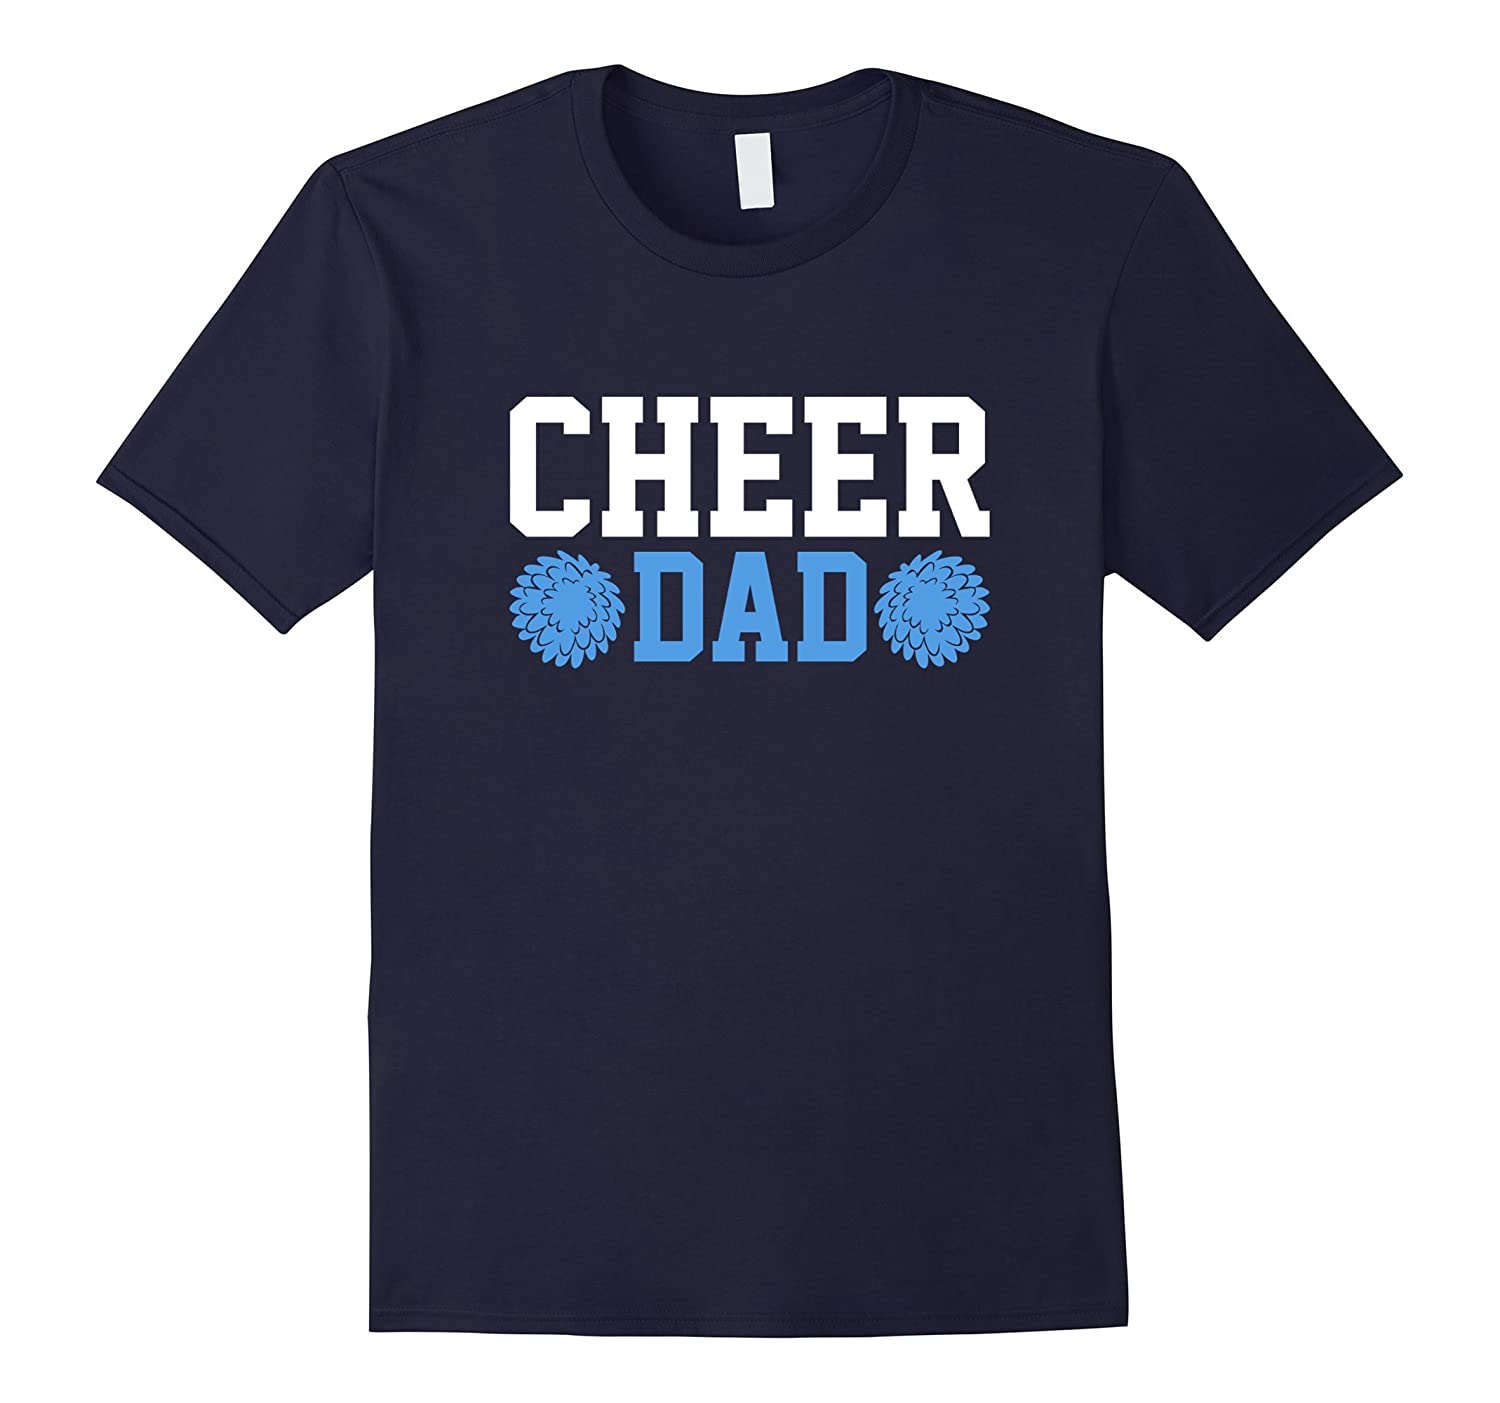 Cheer Dad Cheerleader T-Shirt for Fathers Men Gift-FL